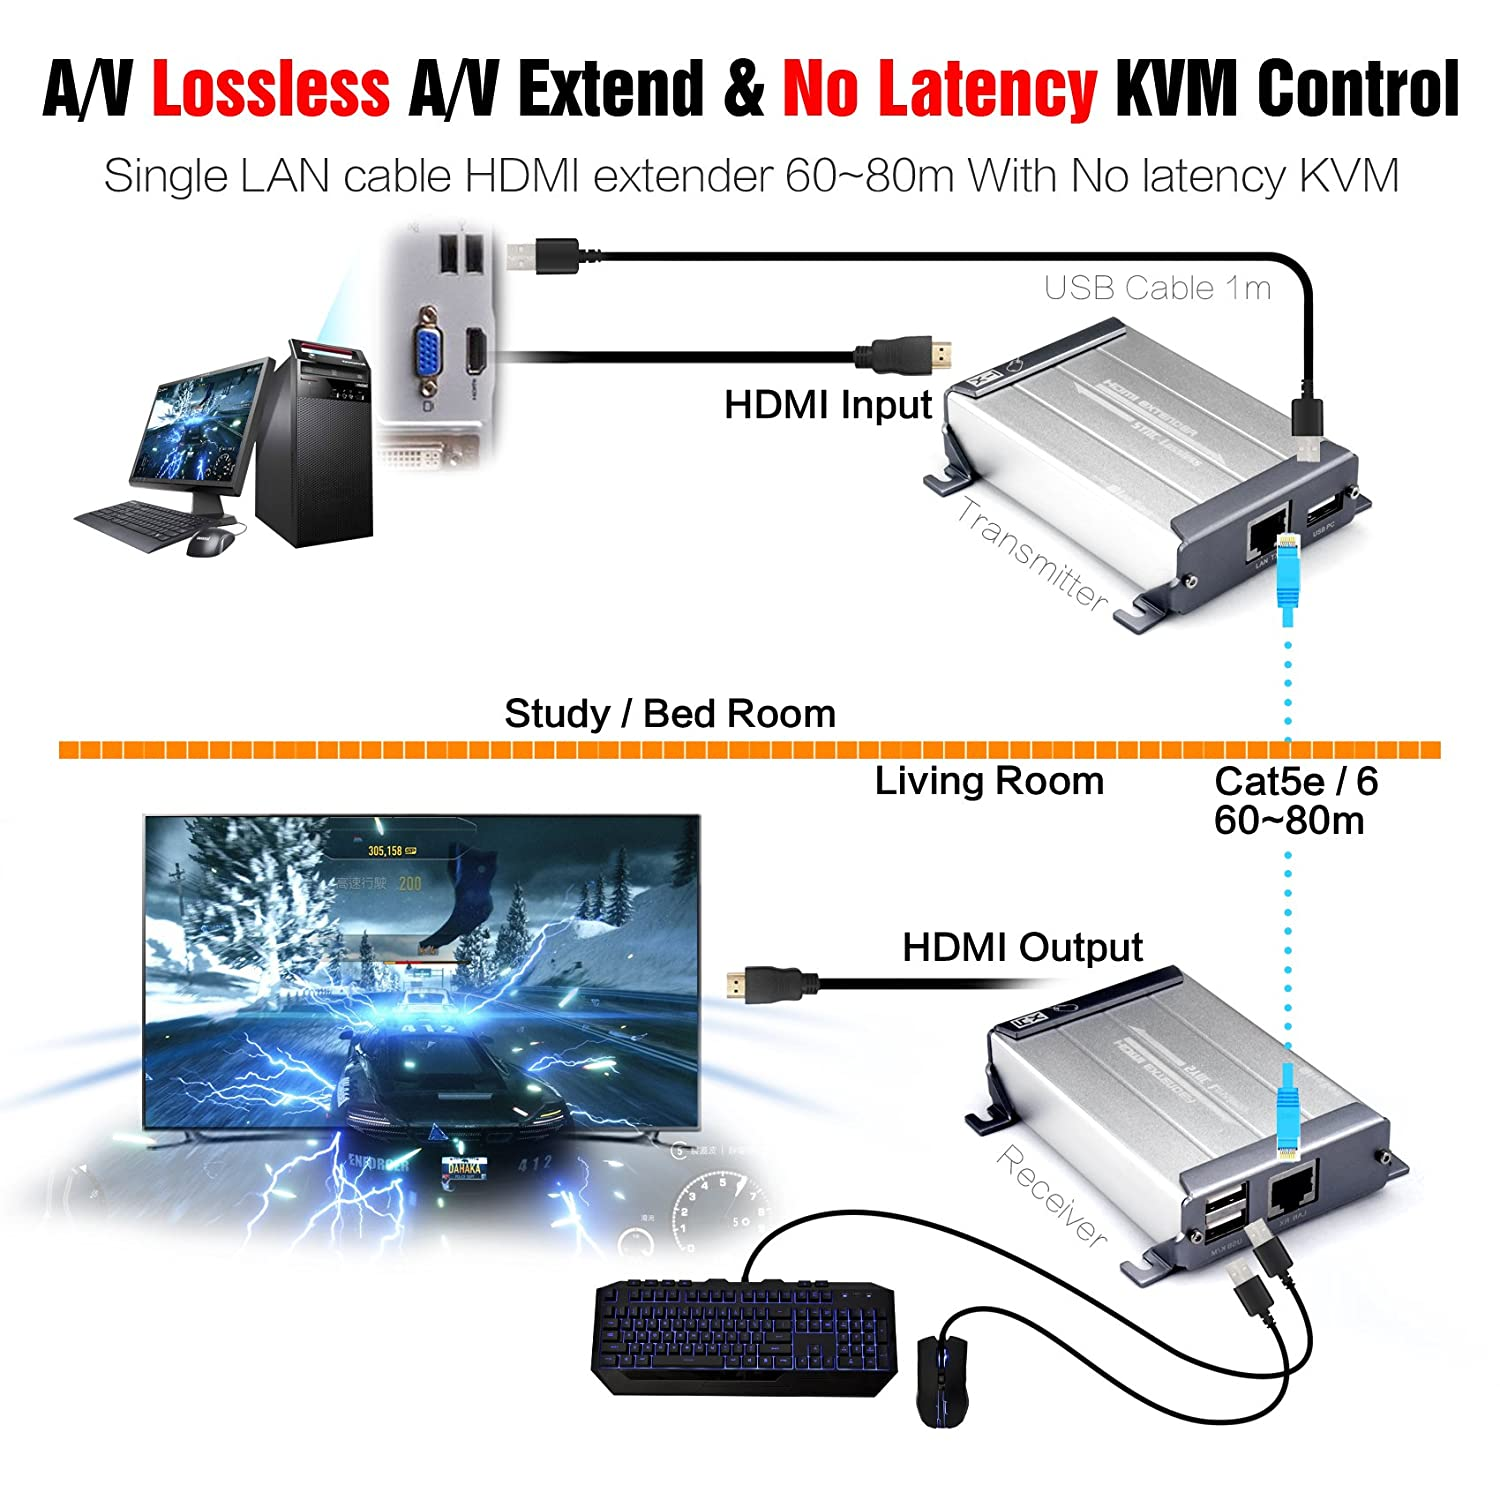 Mirabox Kvm Hdmi Usb Extender 262ft 80m Over Cat5 Wiring On Av Matrix Switches Audio Video Switch Cat5e Cat6 Cat6e Single Lan Cable Lossless No Delay For Dvrcomputerloptop Home